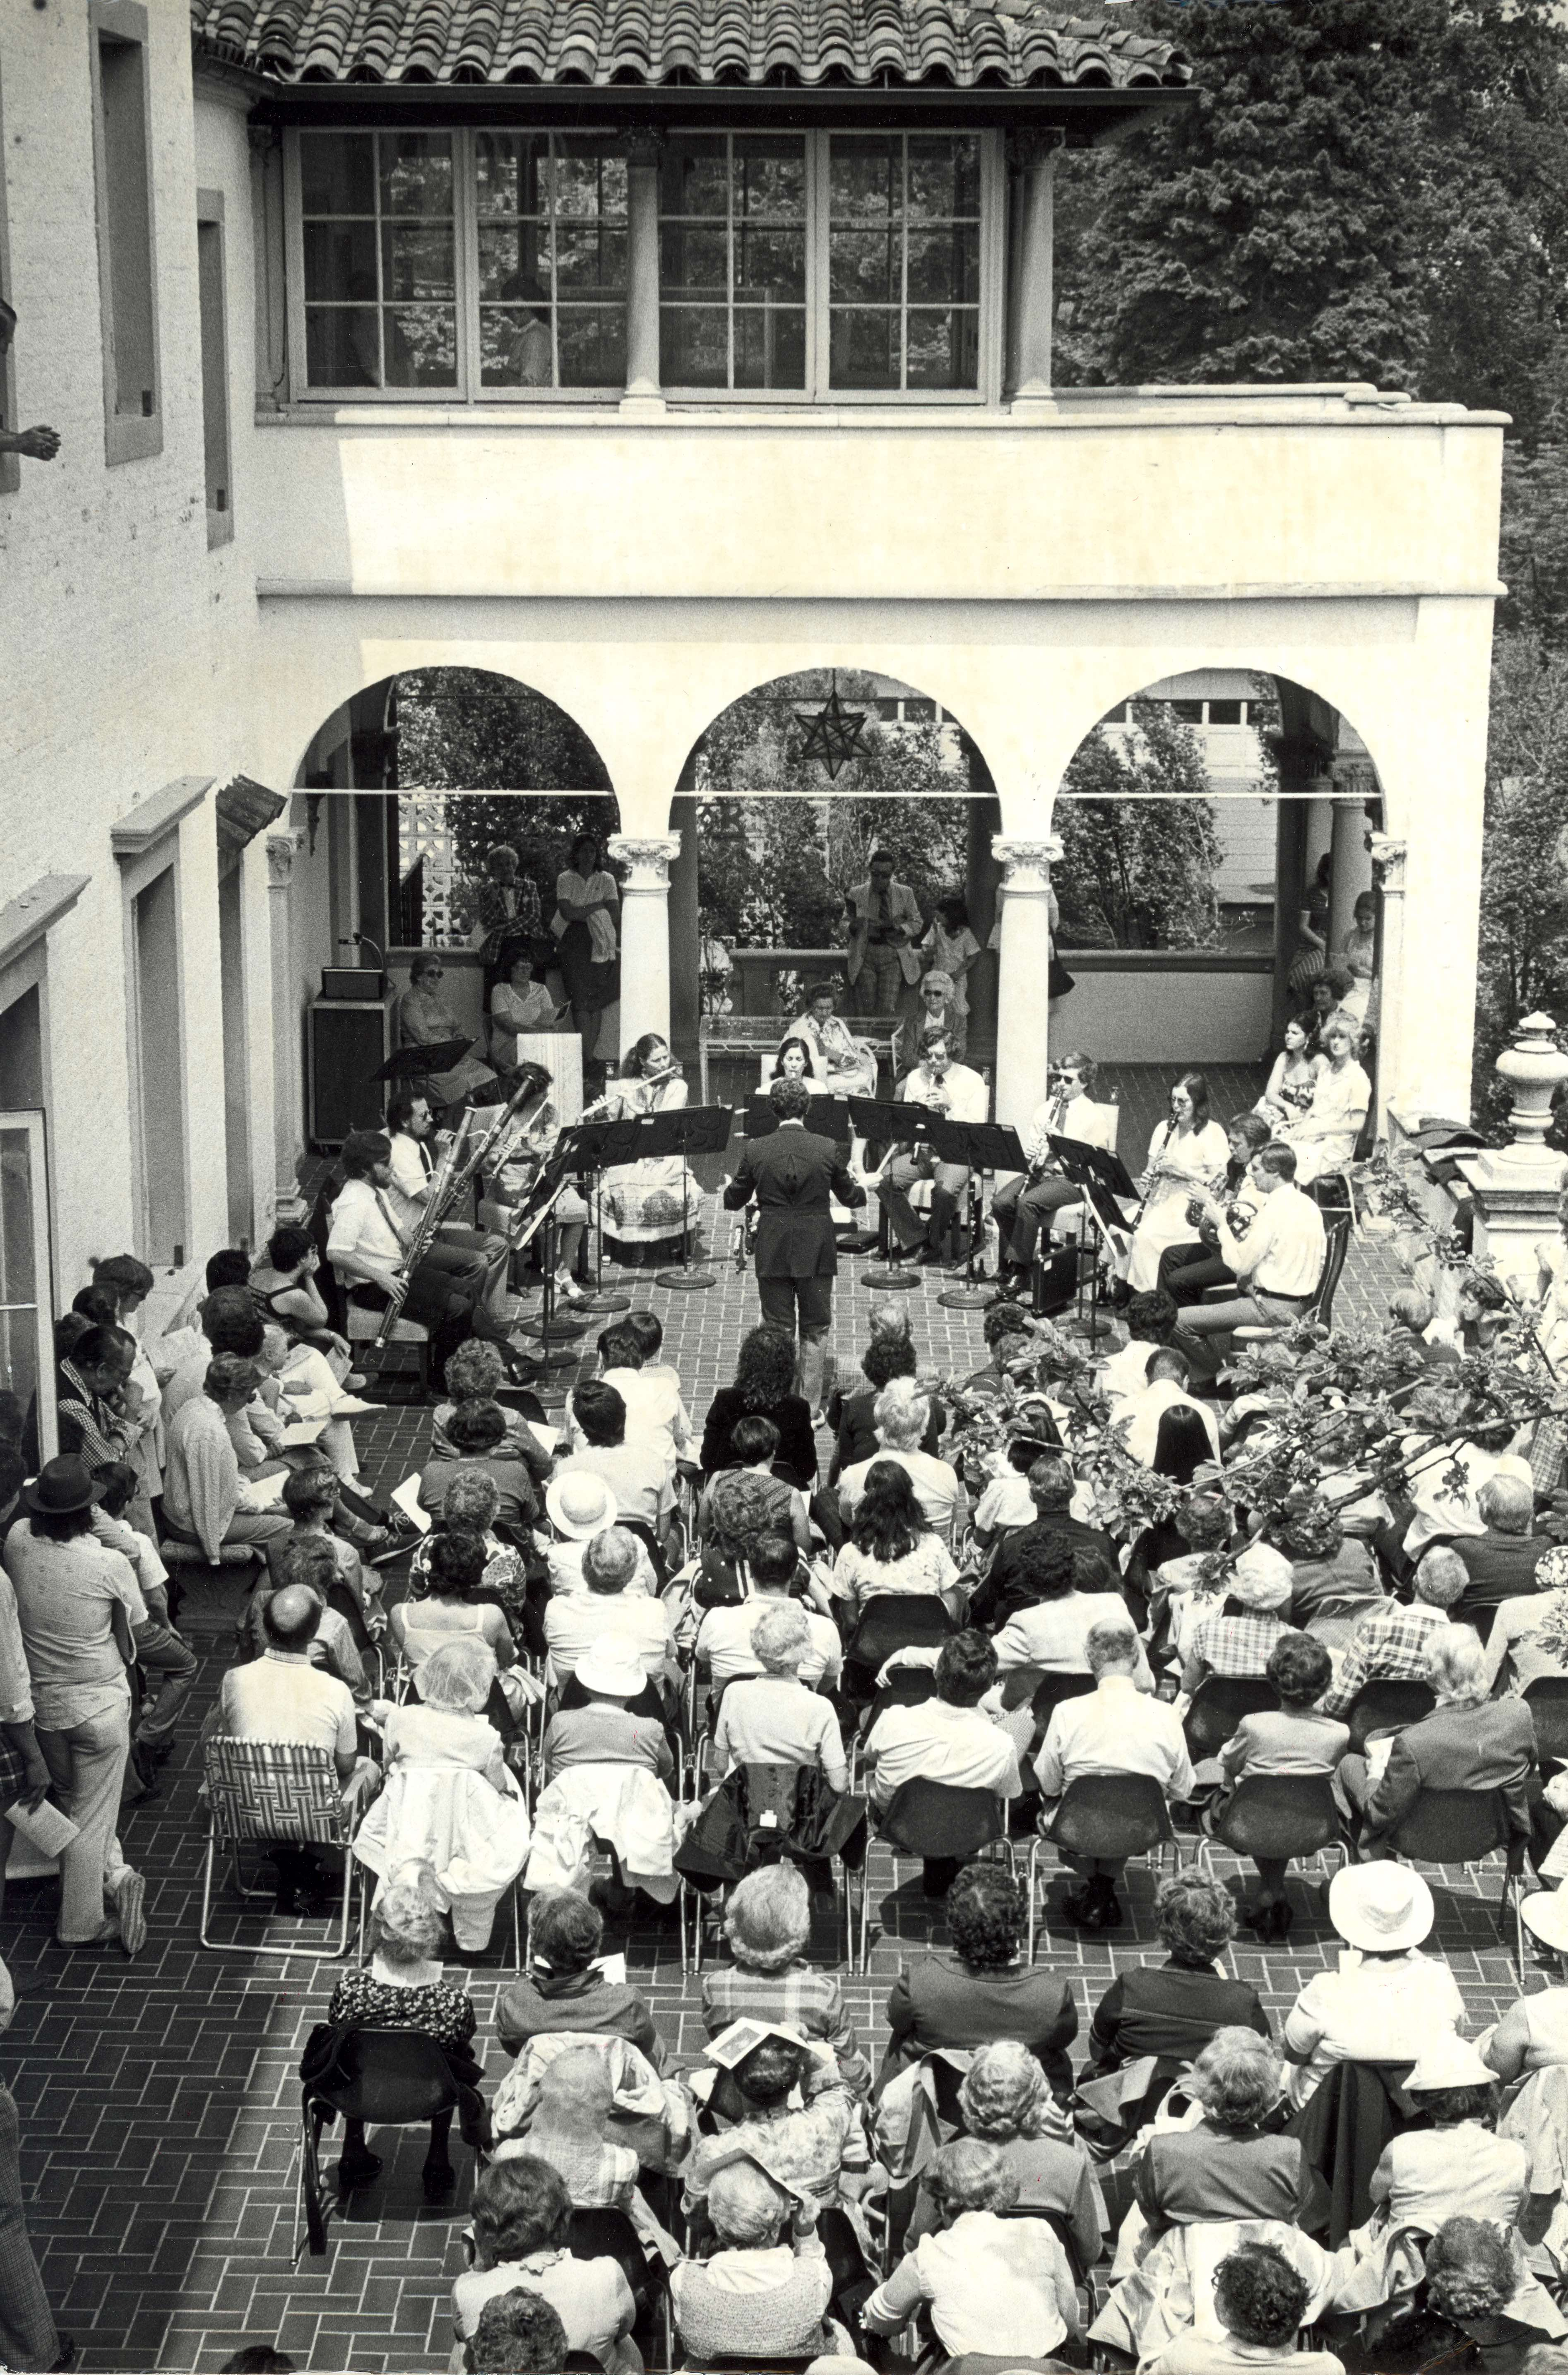 <table class=&quot;lightbox&quot;><tr><td colspan=2 class=&quot;lightbox-title&quot;>Milwaukee Chamber Orchestra</td></tr><tr><td colspan=2 class=&quot;lightbox-caption&quot;>The Milwaukee Chamber Orchestra performs for an audience gathered on a Villa Terrace patio. </td></tr><tr><td colspan=2 class=&quot;lightbox-spacer&quot;></td></tr><tr class=&quot;lightbox-detail&quot;><td class=&quot;cell-title&quot;>Source: </td><td class=&quot;cell-value&quot;>From the Historic Photo Collection of the Milwaukee Public Library. Reprinted with permission.<br /><a href=&quot;http://content.mpl.org/cdm/singleitem/collection/HstoricPho/id/1007/rec/1&quot; target=&quot;_blank&quot;>Milwaukee Public Library</a></td></tr><tr class=&quot;filler-row&quot;><td colspan=2>&nbsp;</td></tr></table>